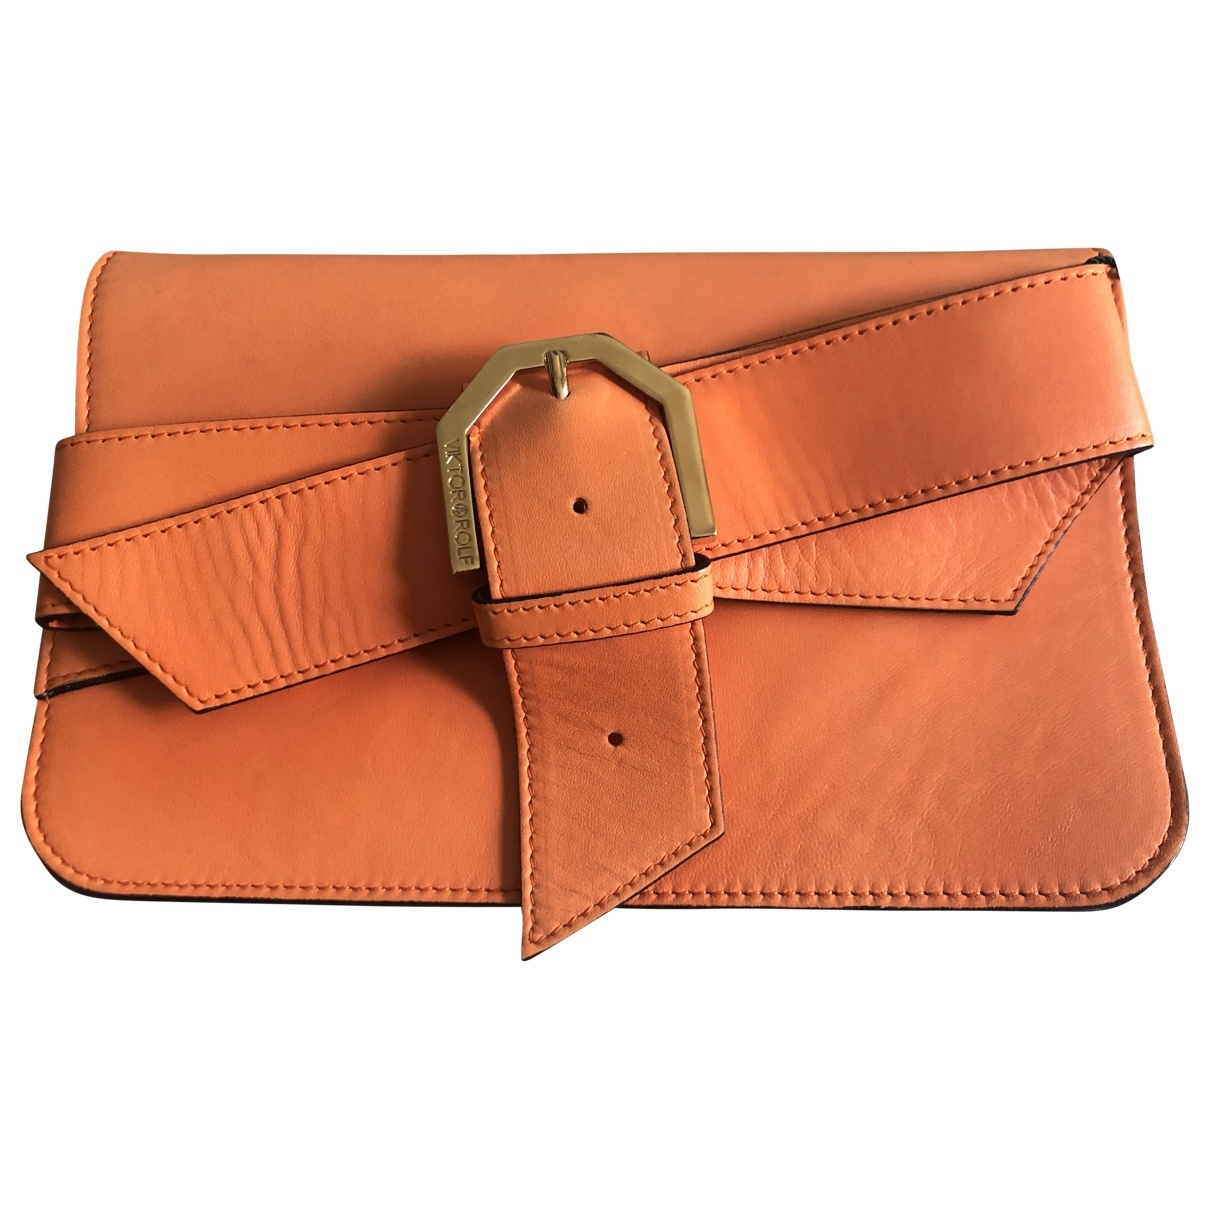 Viktor & Rolf \N Handtasche in  Orange Leder